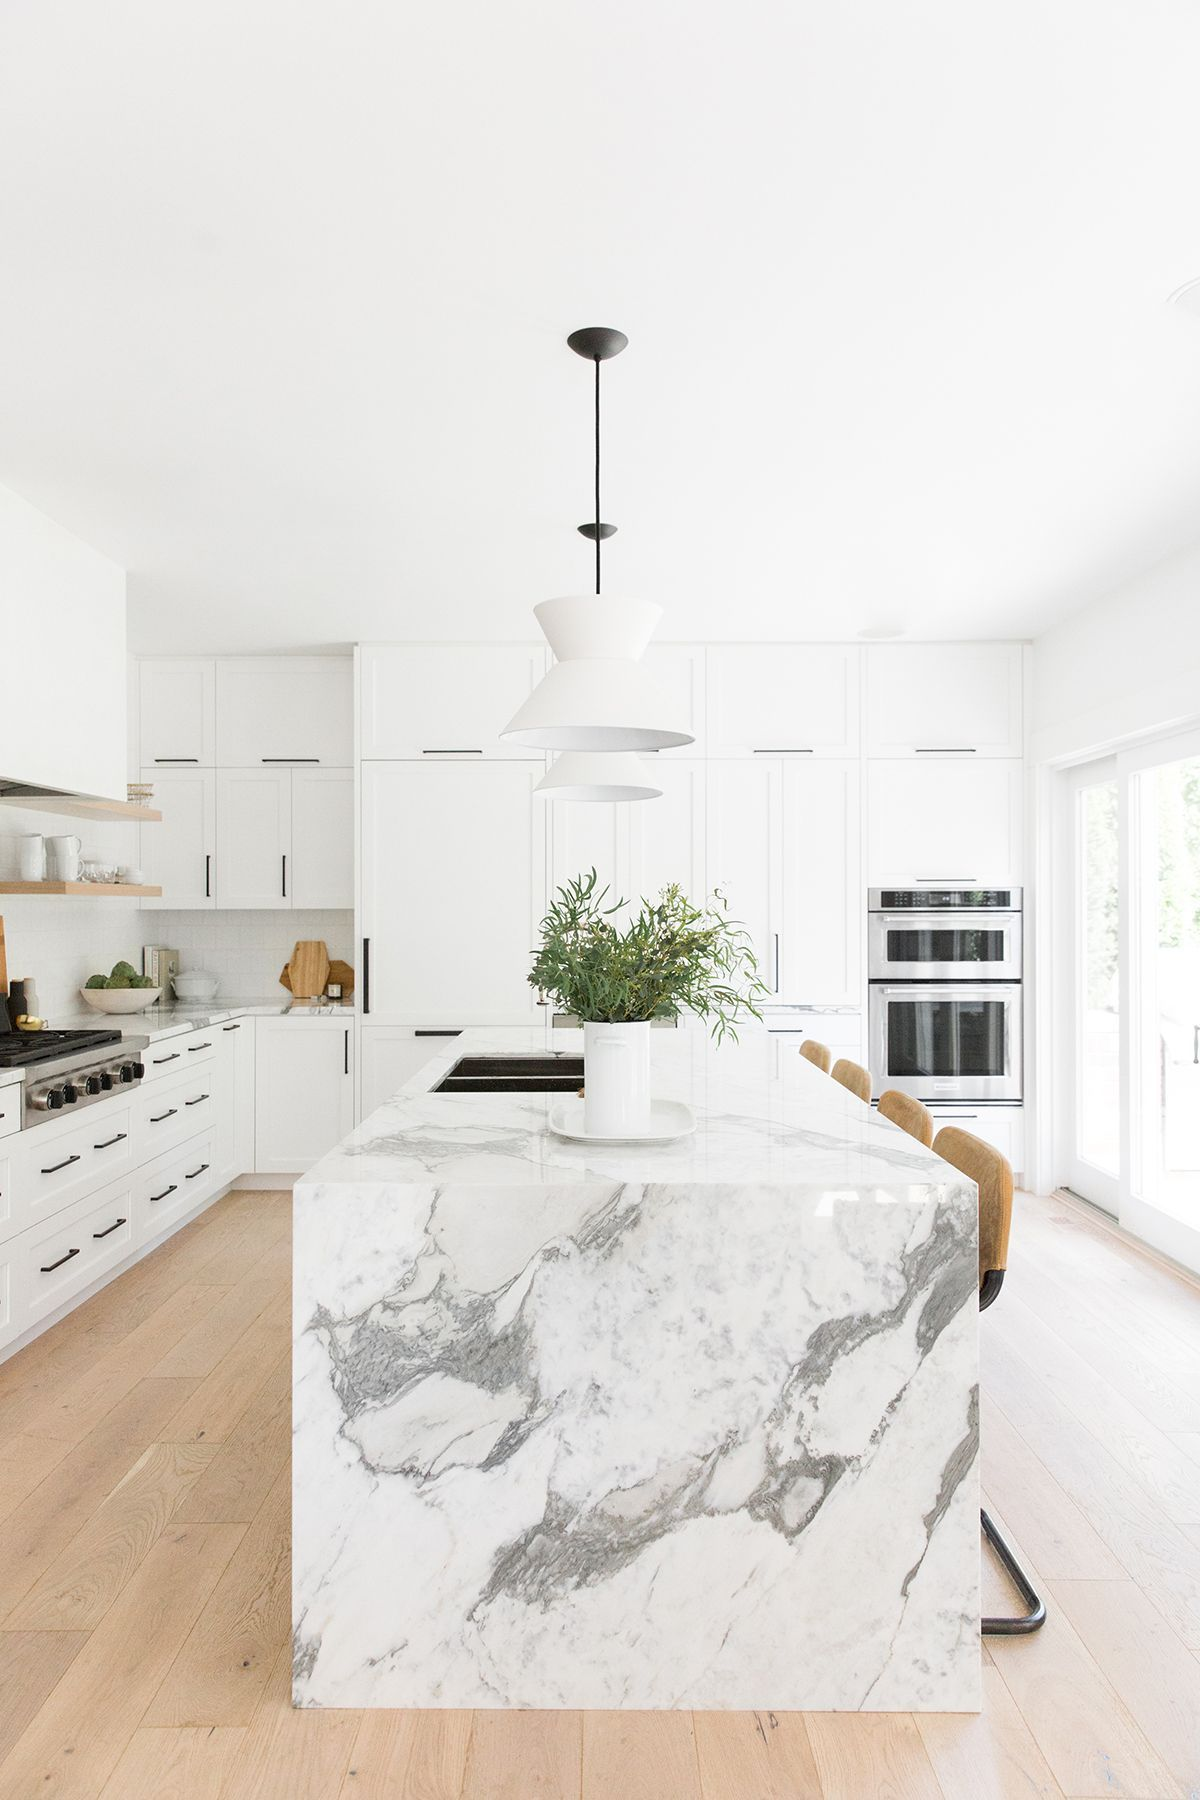 Types of kitchen lighting Kitchen Cabinets Find More Ideas Kitchen Lighting Fixtures Kitchen Lighting Over Island Farmhouse Kitchen Lighting Kitchen Lighting Ideas Kitchen Lighting Over Sink Pinterest Types Of Kitchen Lighting Anything You Need To Know In 2019